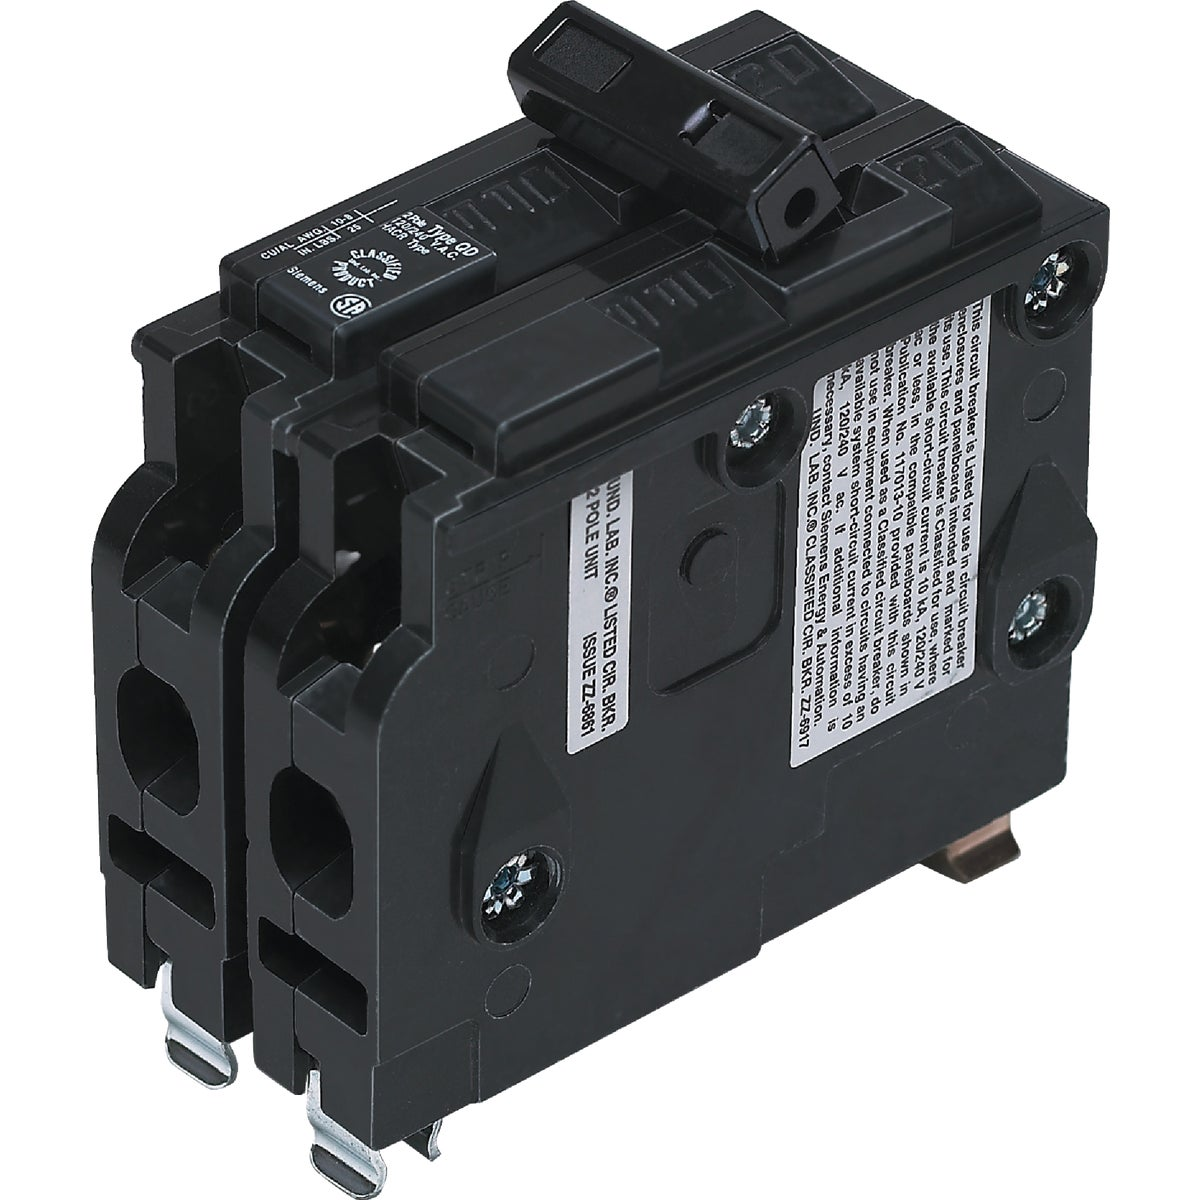 60A 2P CIRCUIT BREAKER - D260 by Connecticut Electric